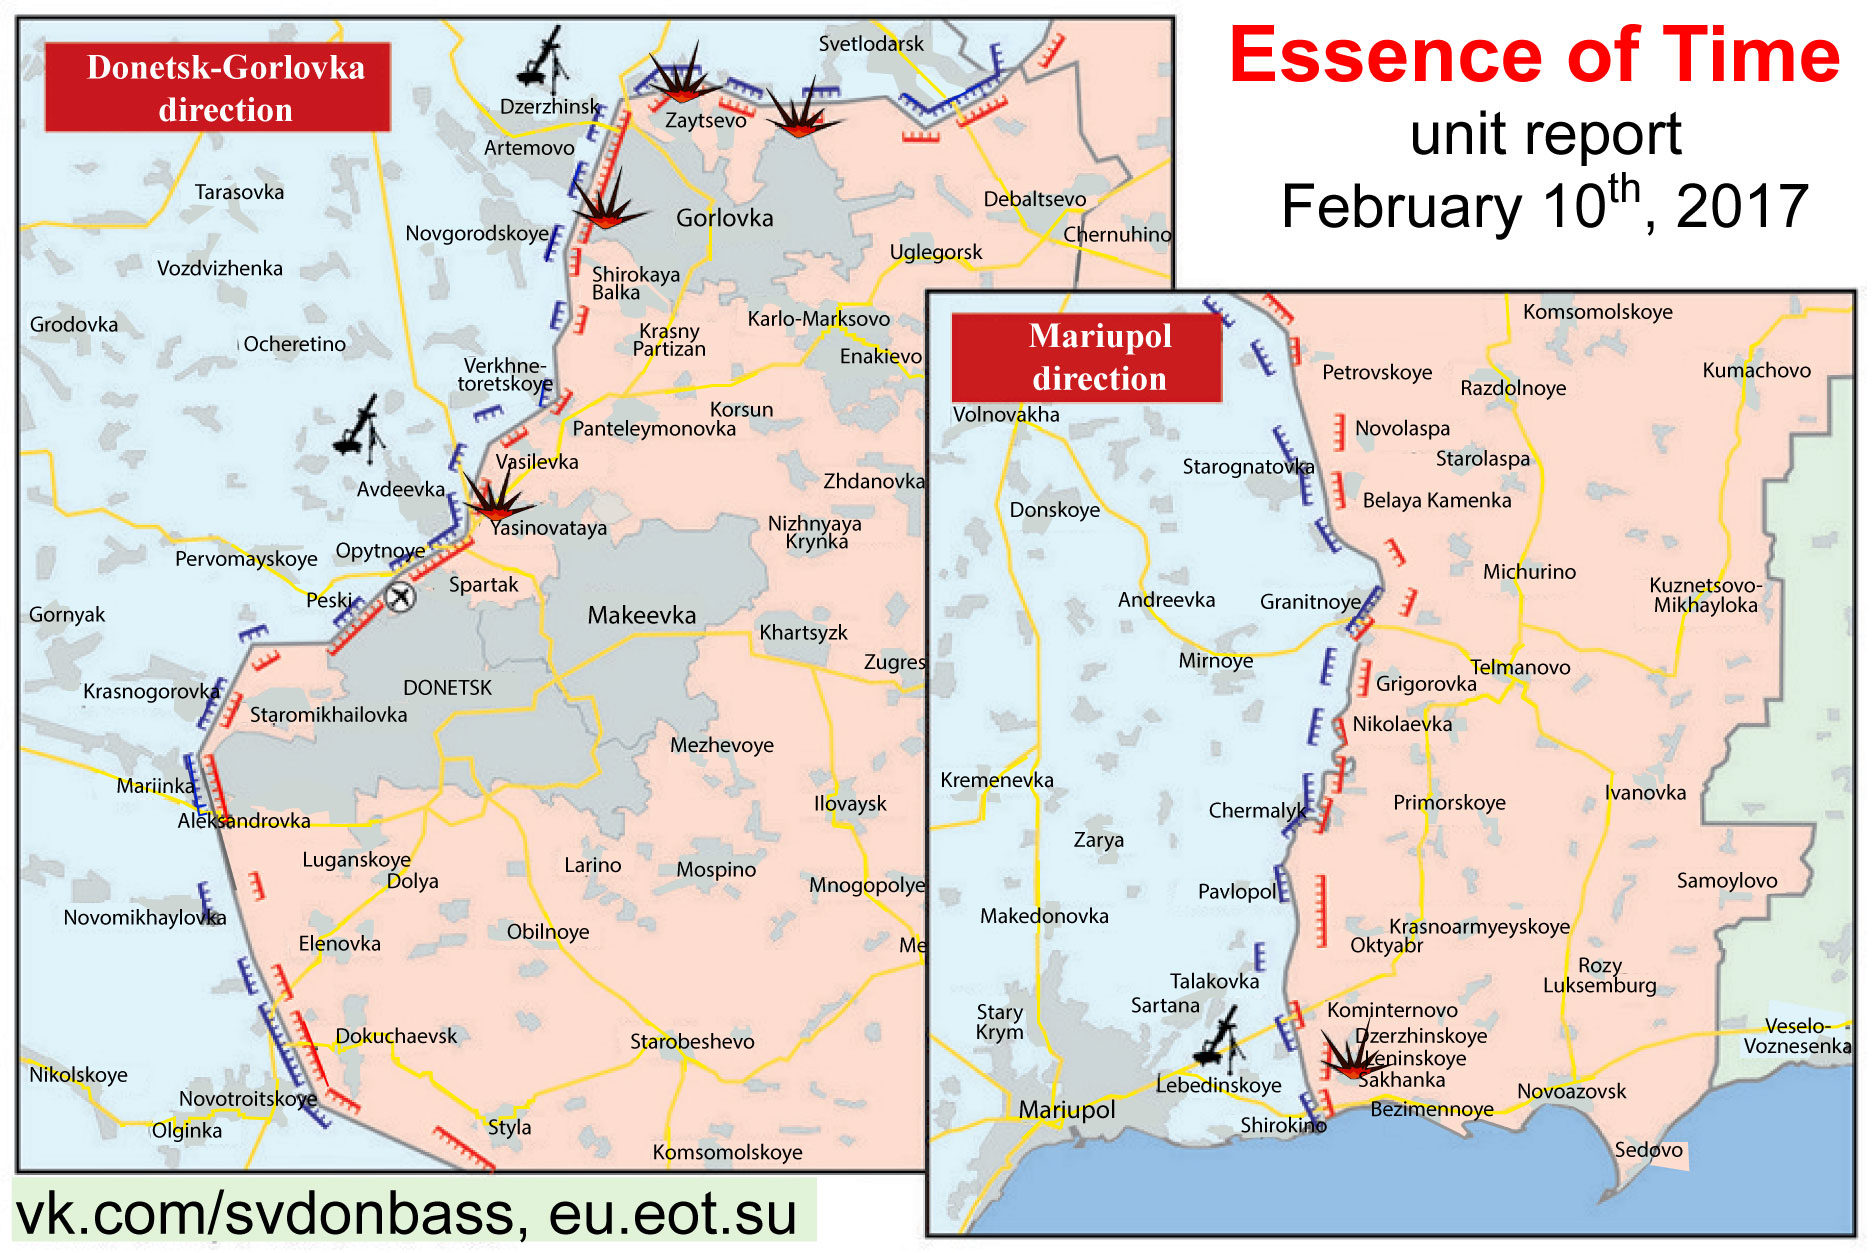 February 10 Essence Of Time Unit In Donbass Situation Report